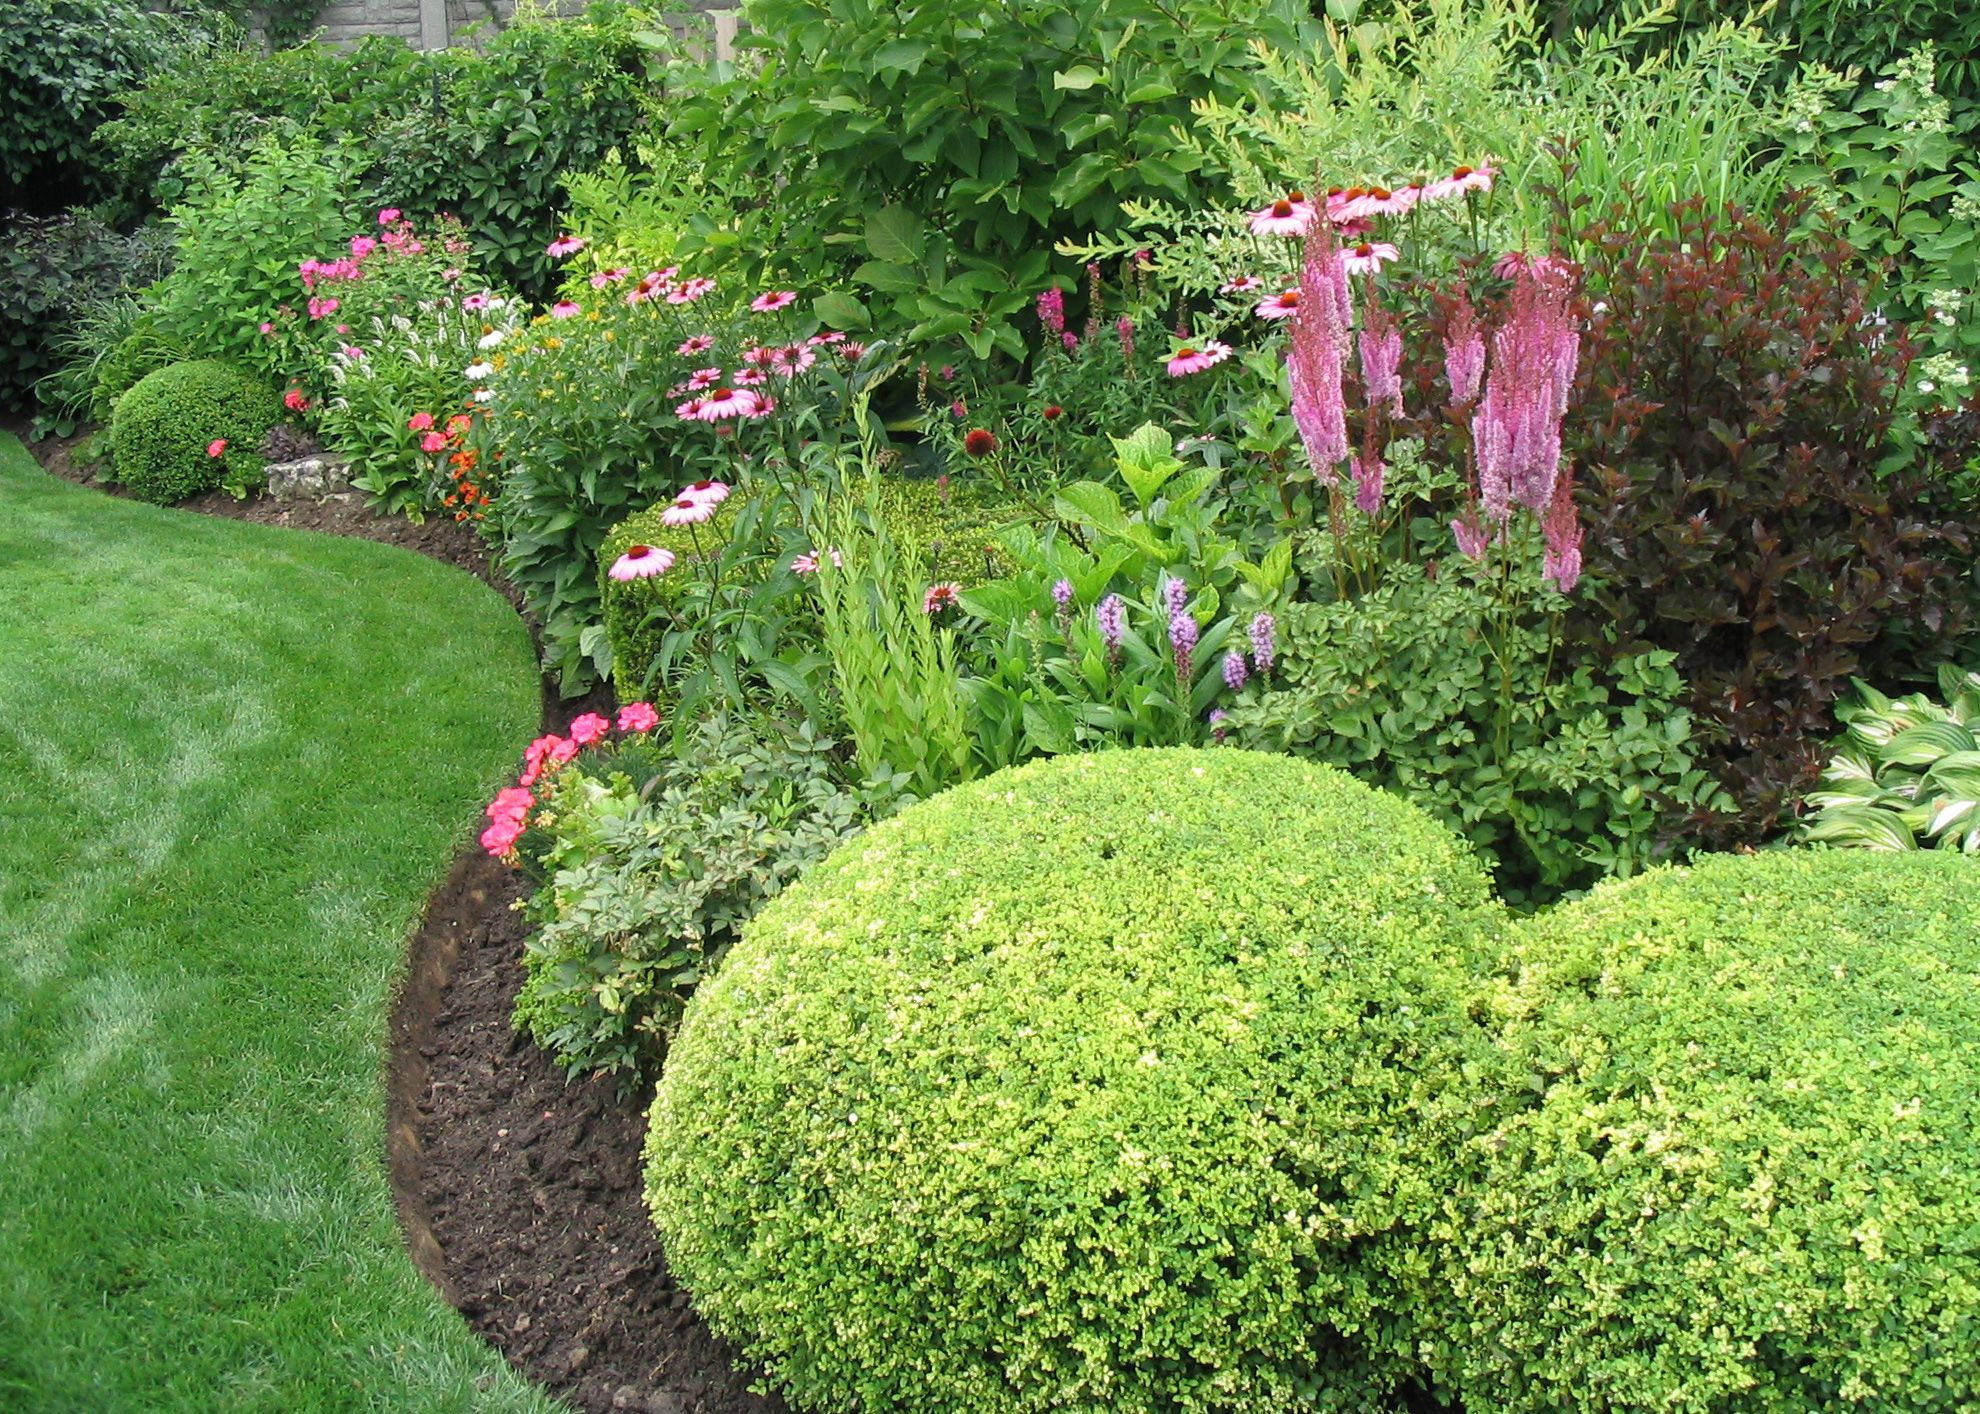 Landscaping With Evergreen Shrubs : Landscape pictures ideas landscaping evergreen garden